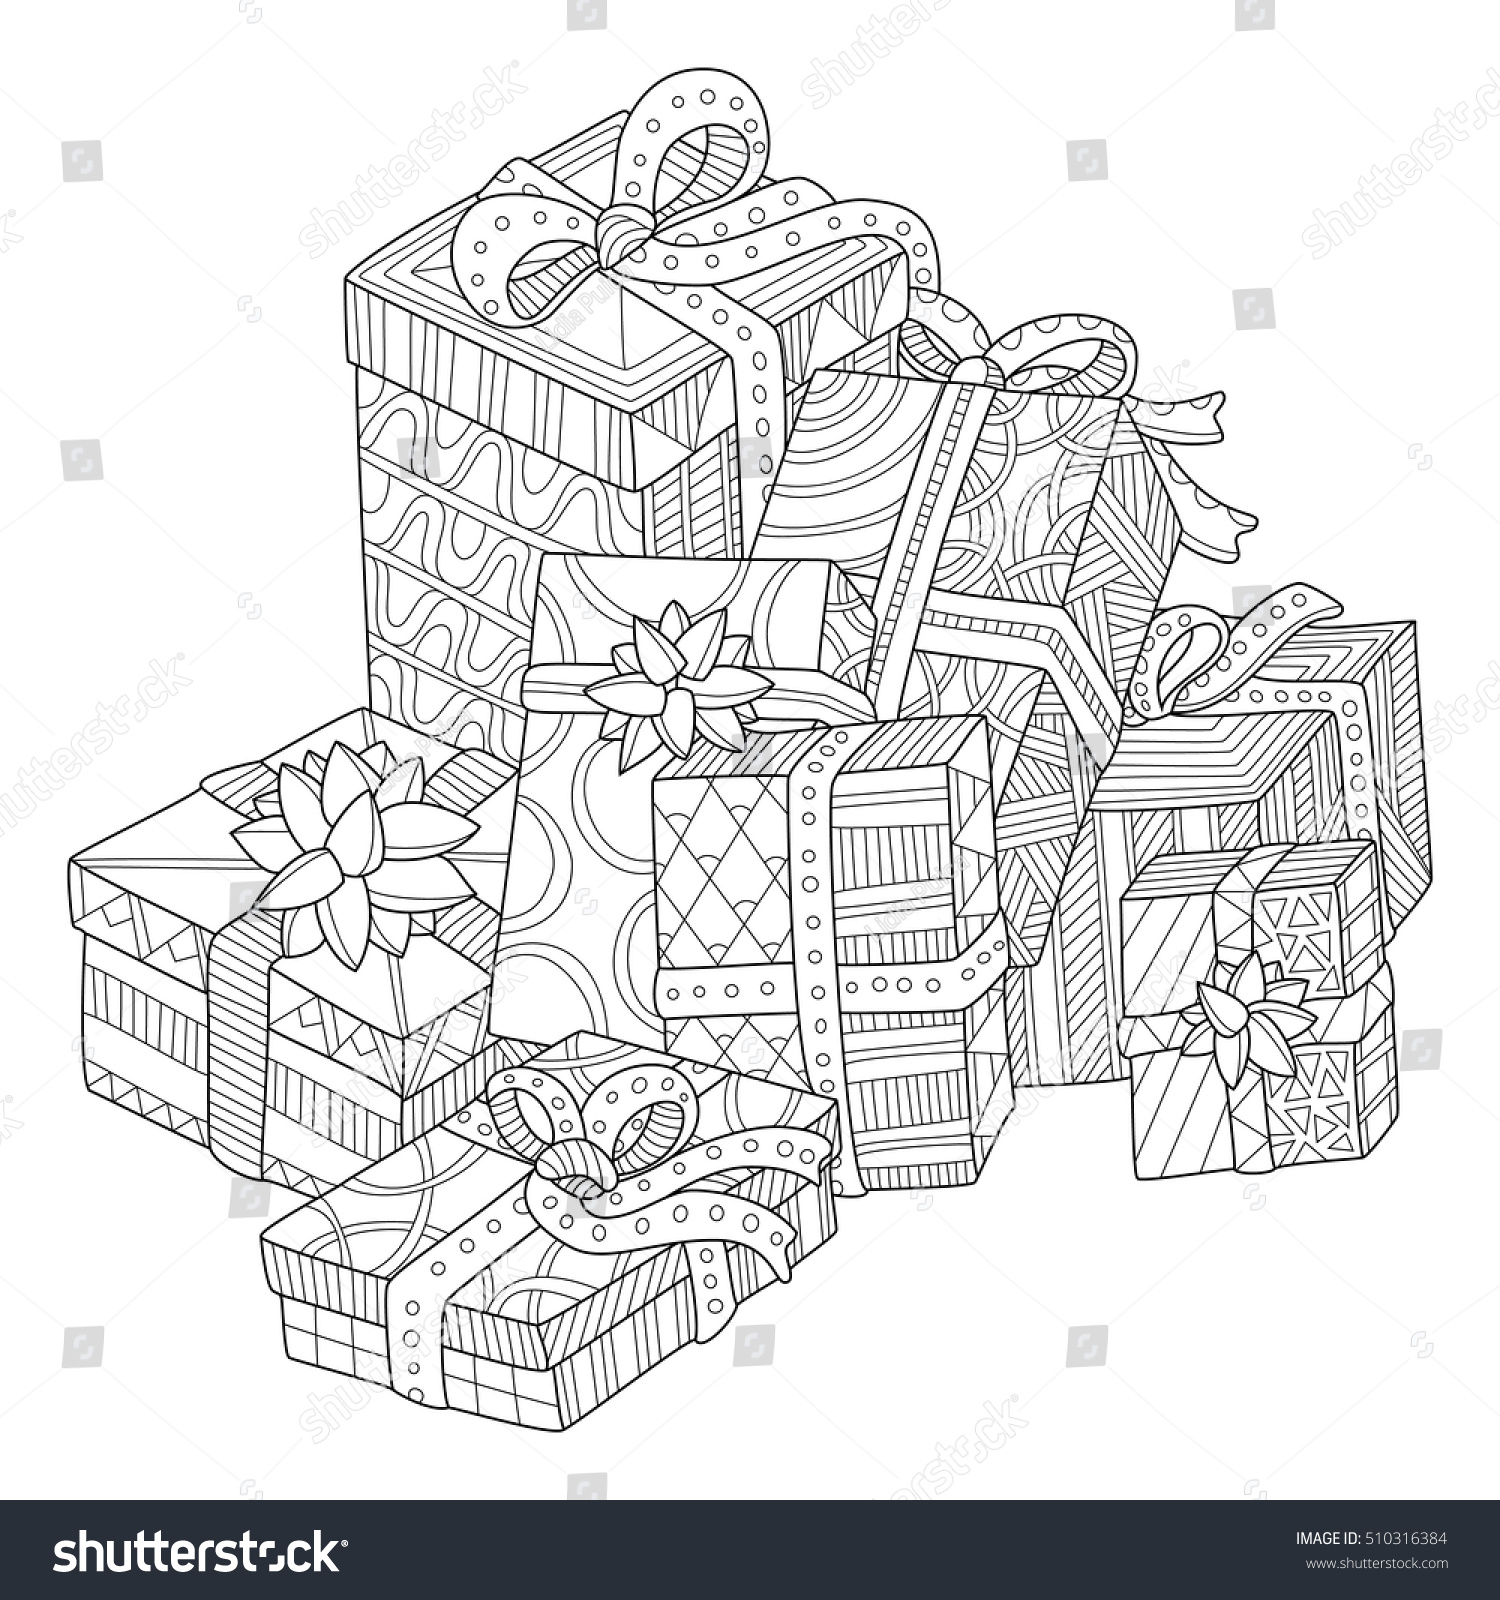 Gift Boxes Coloring Page Adults Zentangle Stock Vector 510316384 ...